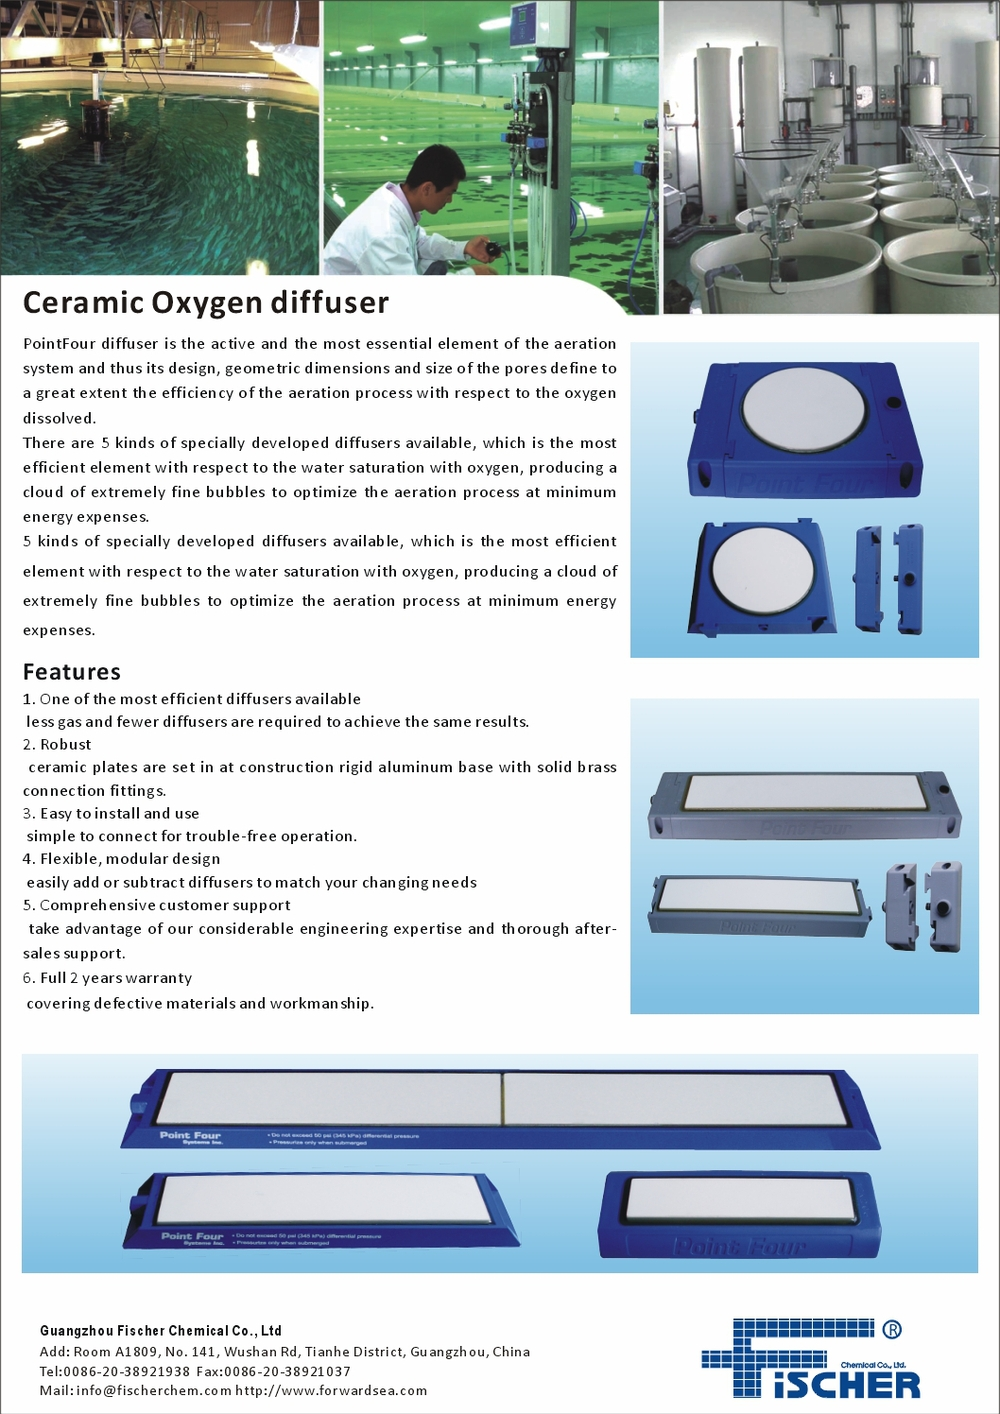 Ceramic Oxygen Diffusers for the Recirculating Aquaculture System